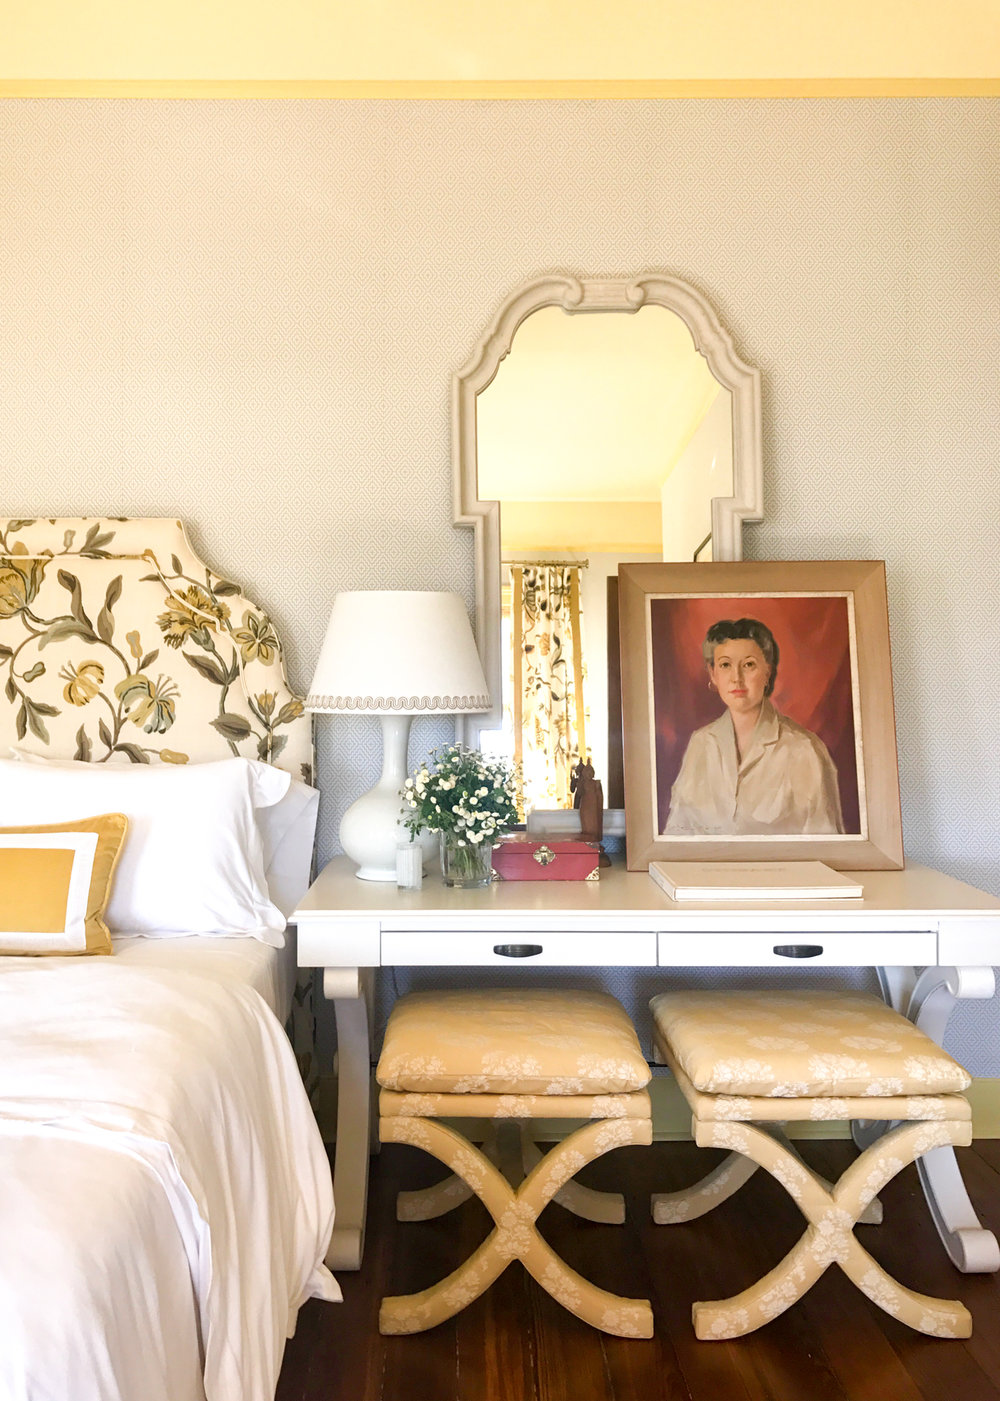 suzanne kasler bella headboard  /  miles redd queen anne mirror  /  curved x bench  /  suzanne kasler gourd lamp  /  whitley desk  /  emma scalloped bedding